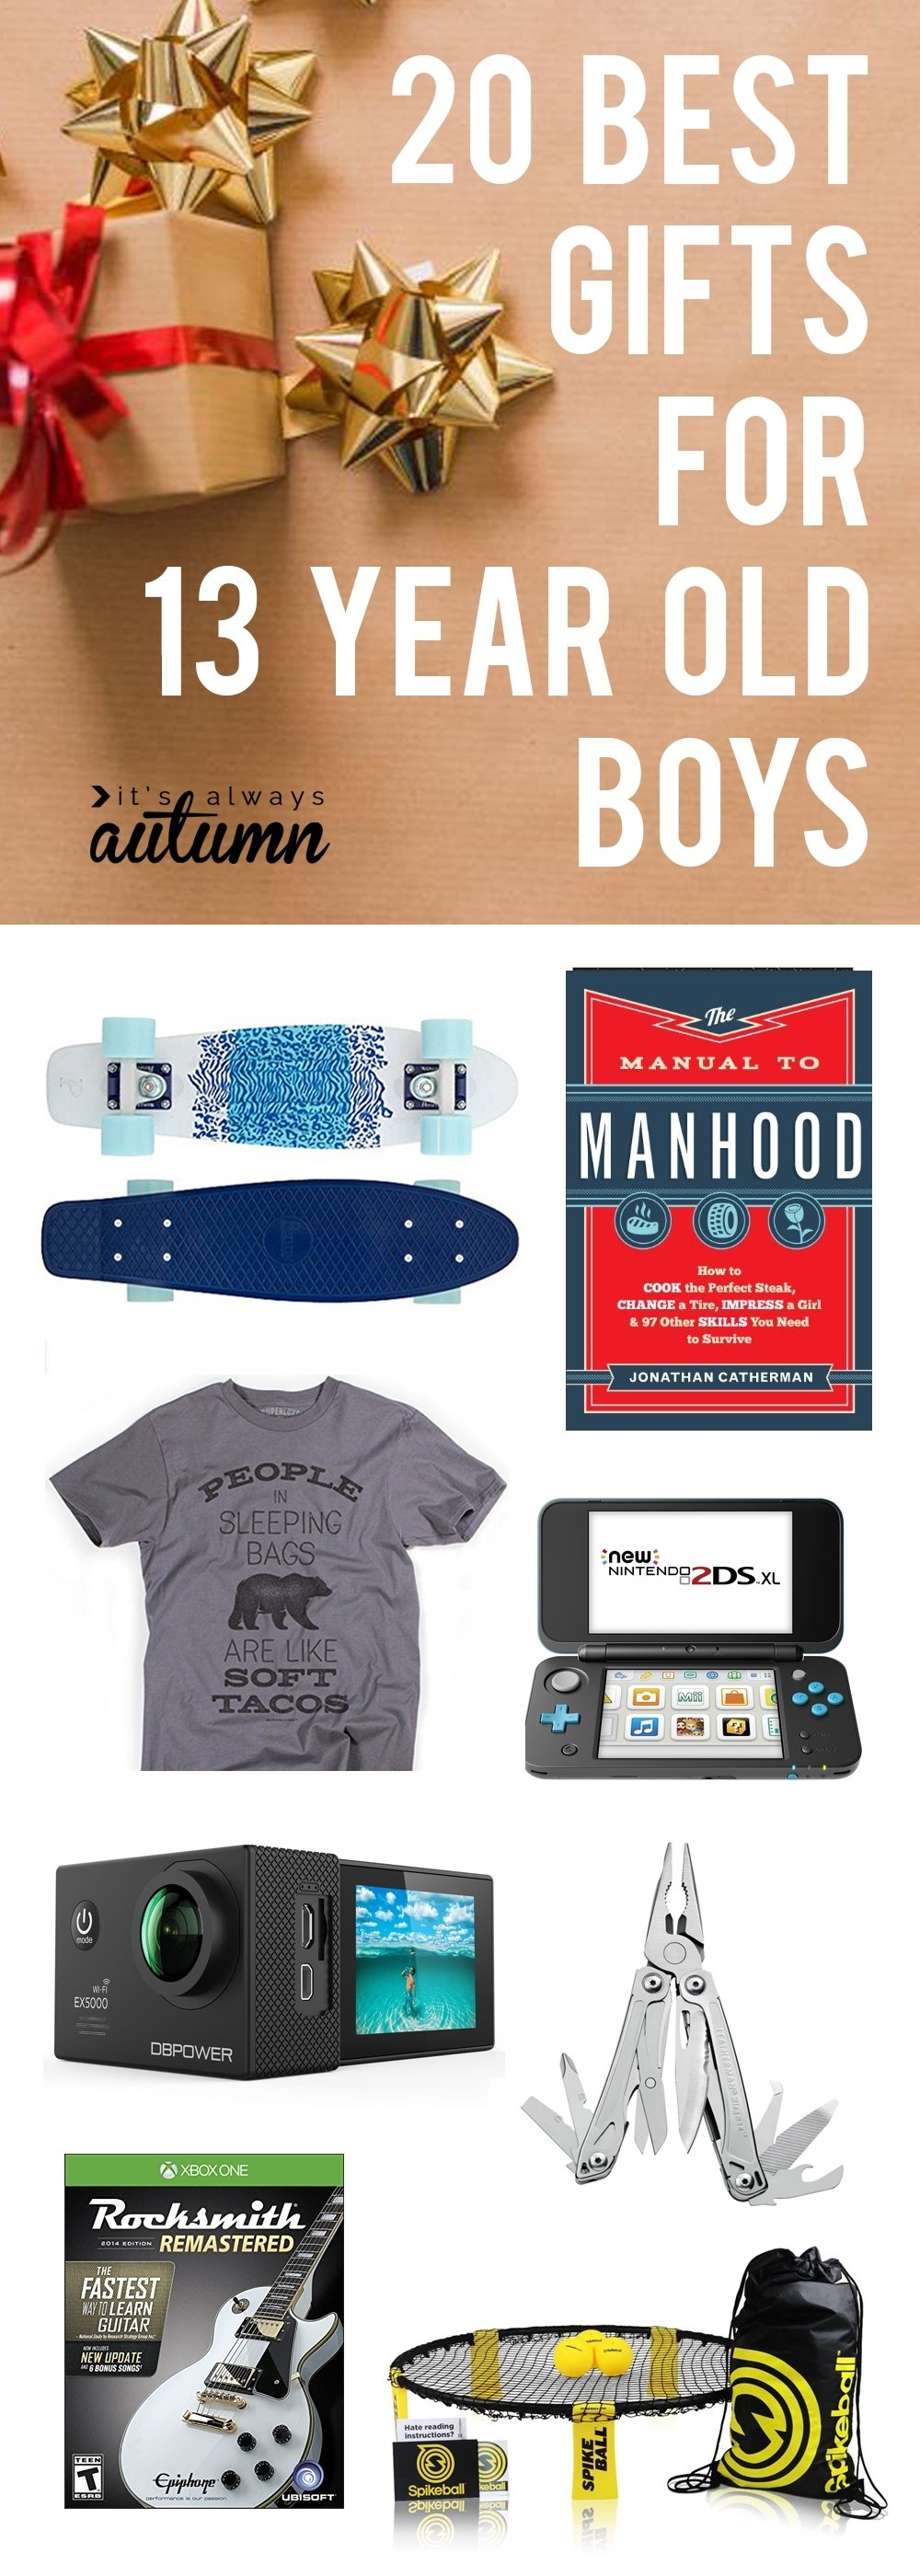 10 Trendy 13 Year Old Christmas Ideas best christmas gifts for 13 year old boys its always autumn 4 2021